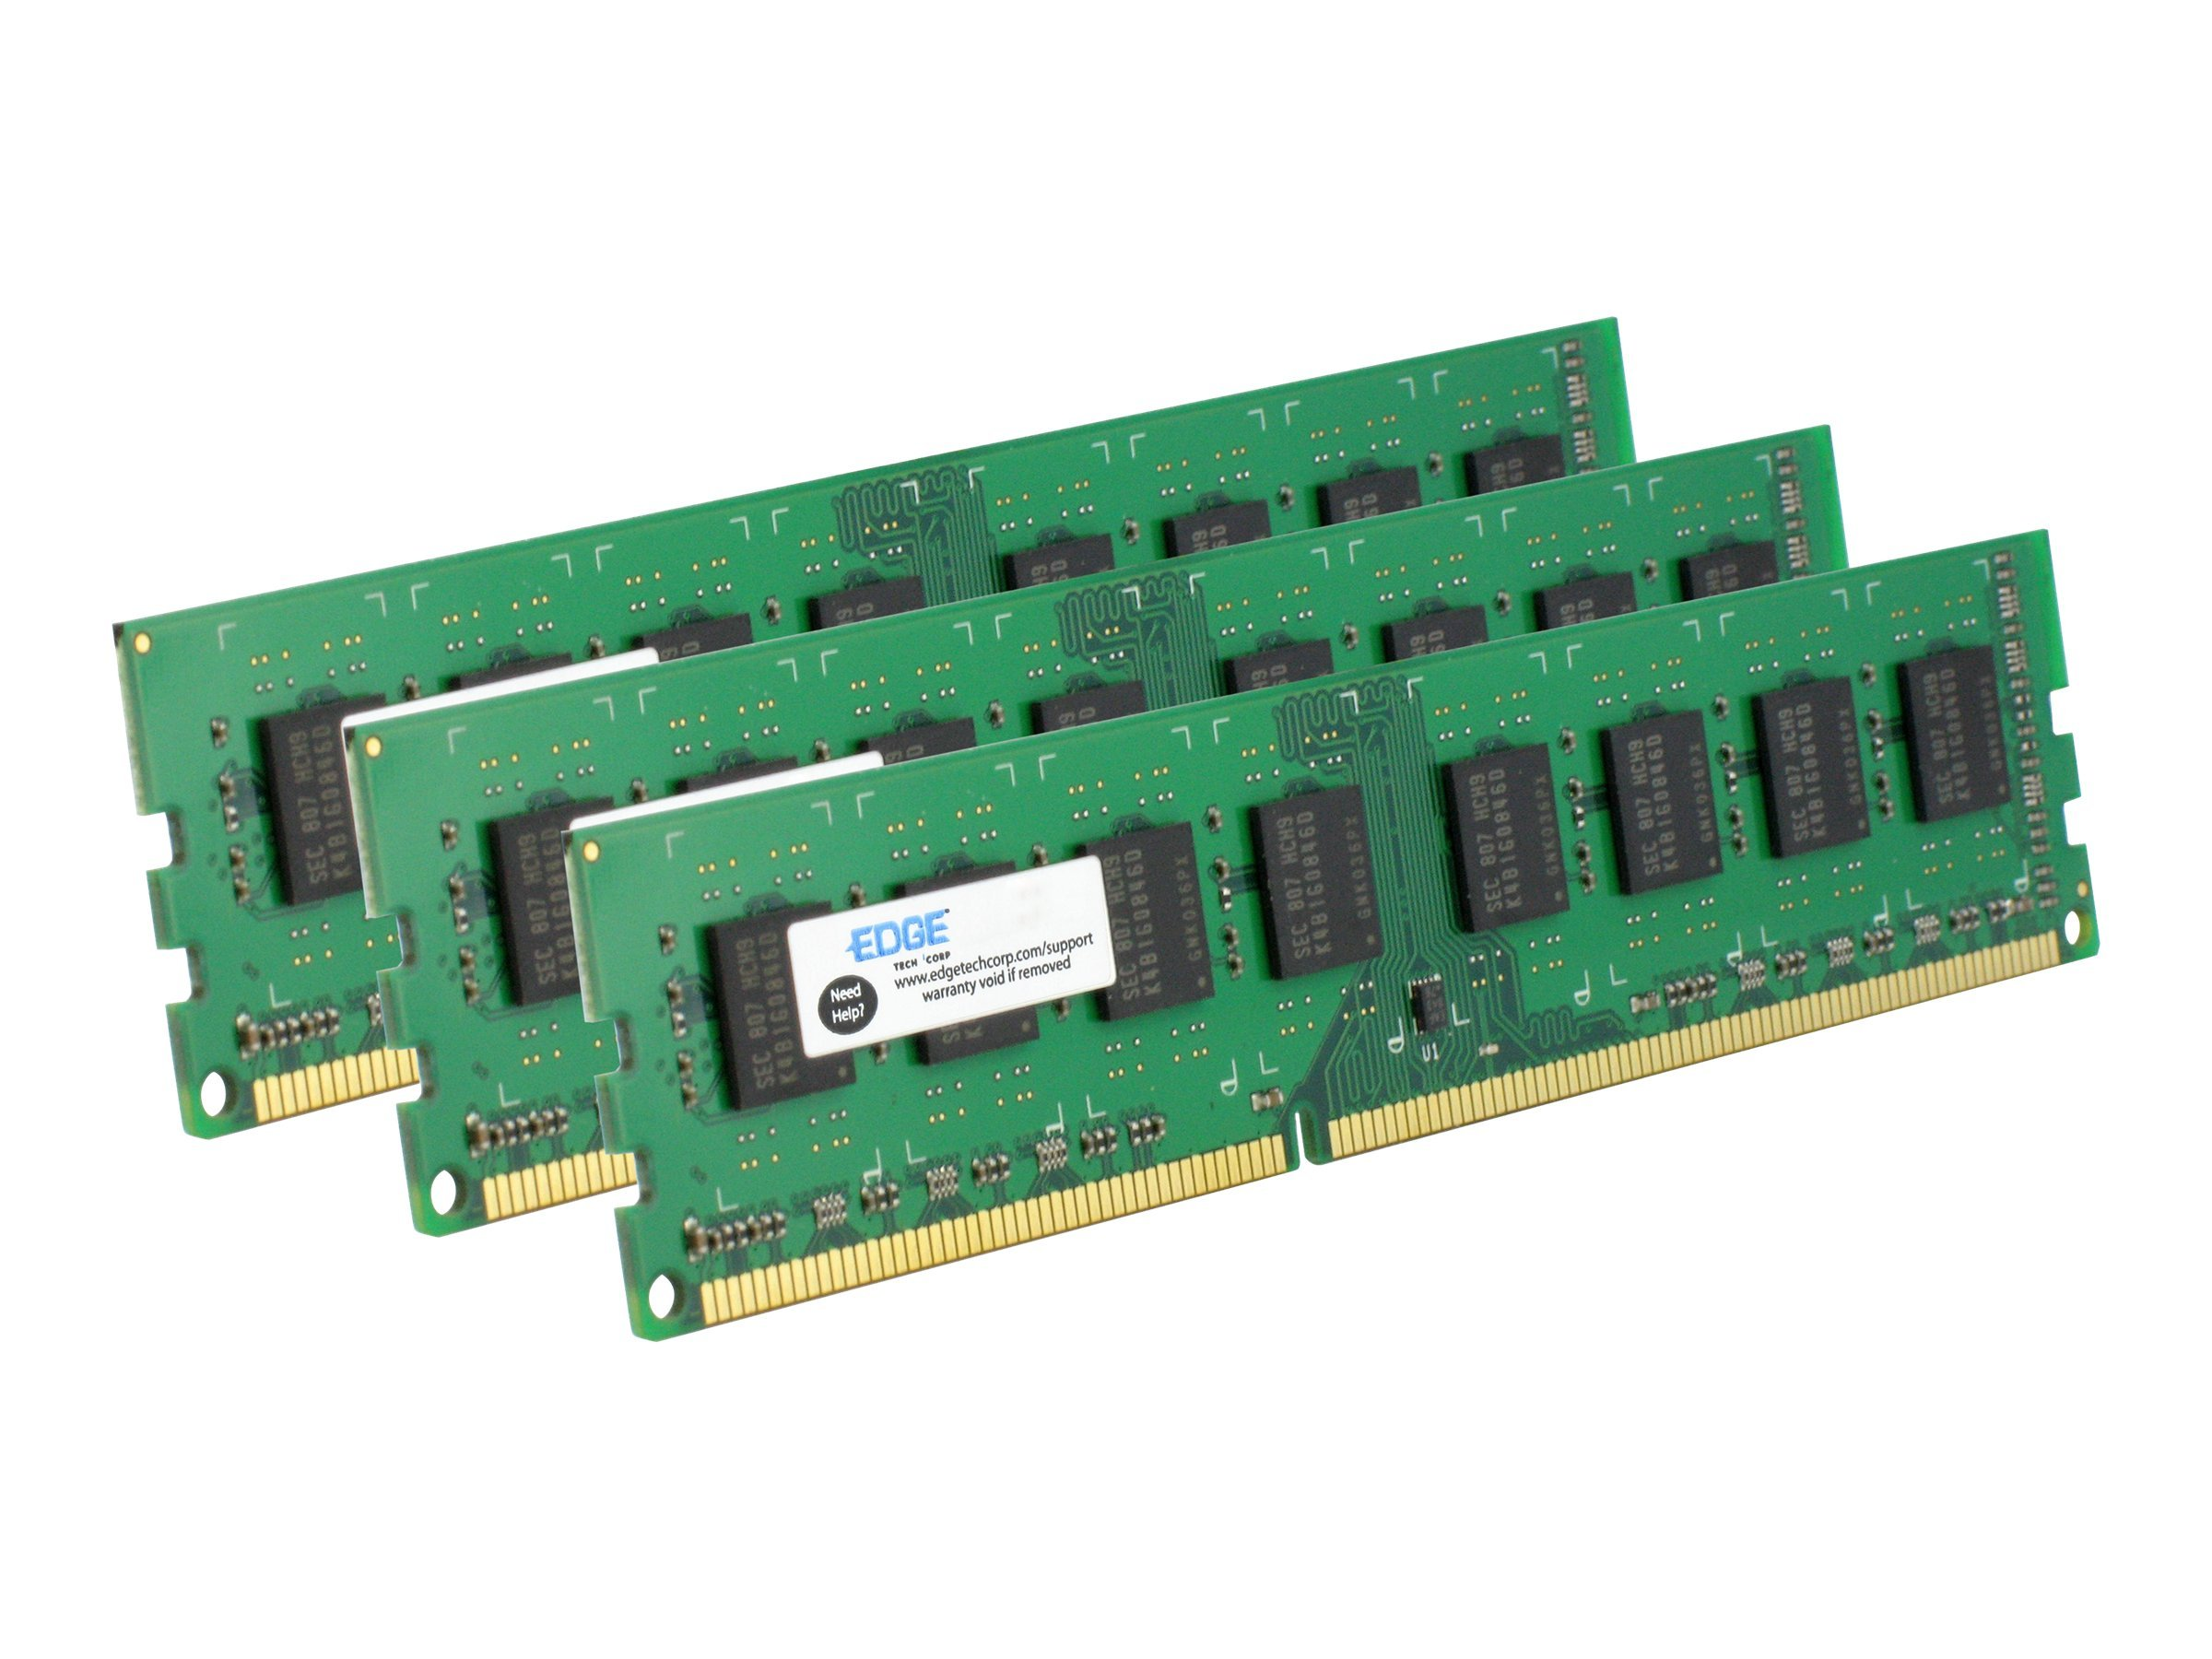 Edge 3GB PC3-10600 240-pin DDR3 SDRAM UDIMM Kit, PE21571203, 31454179, Memory